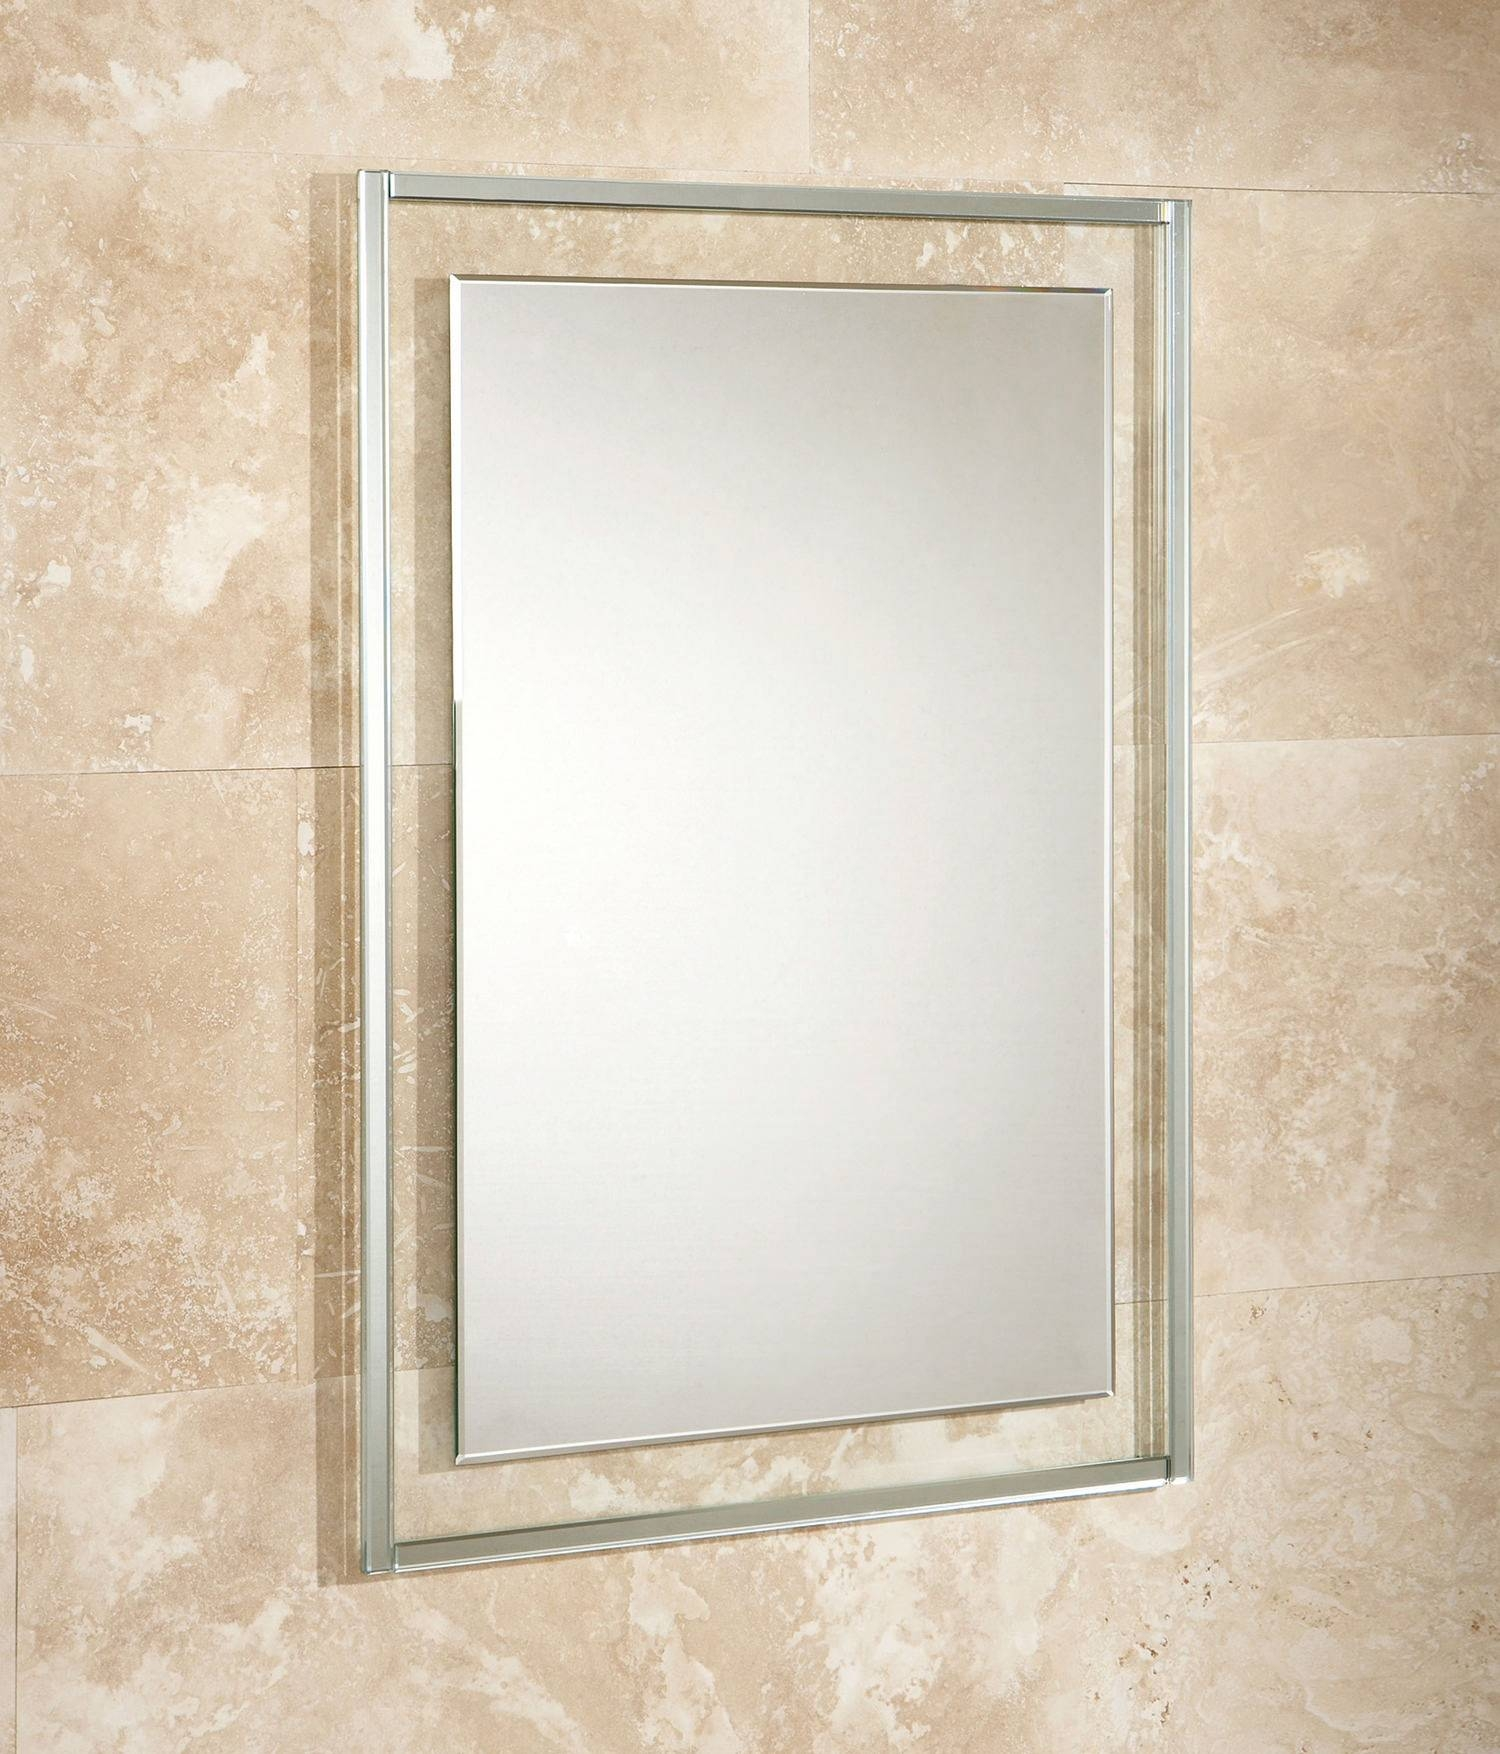 Hib Bathroom Mirrors - Qs Supplies regarding Bevel Edged Mirrors (Image 9 of 15)